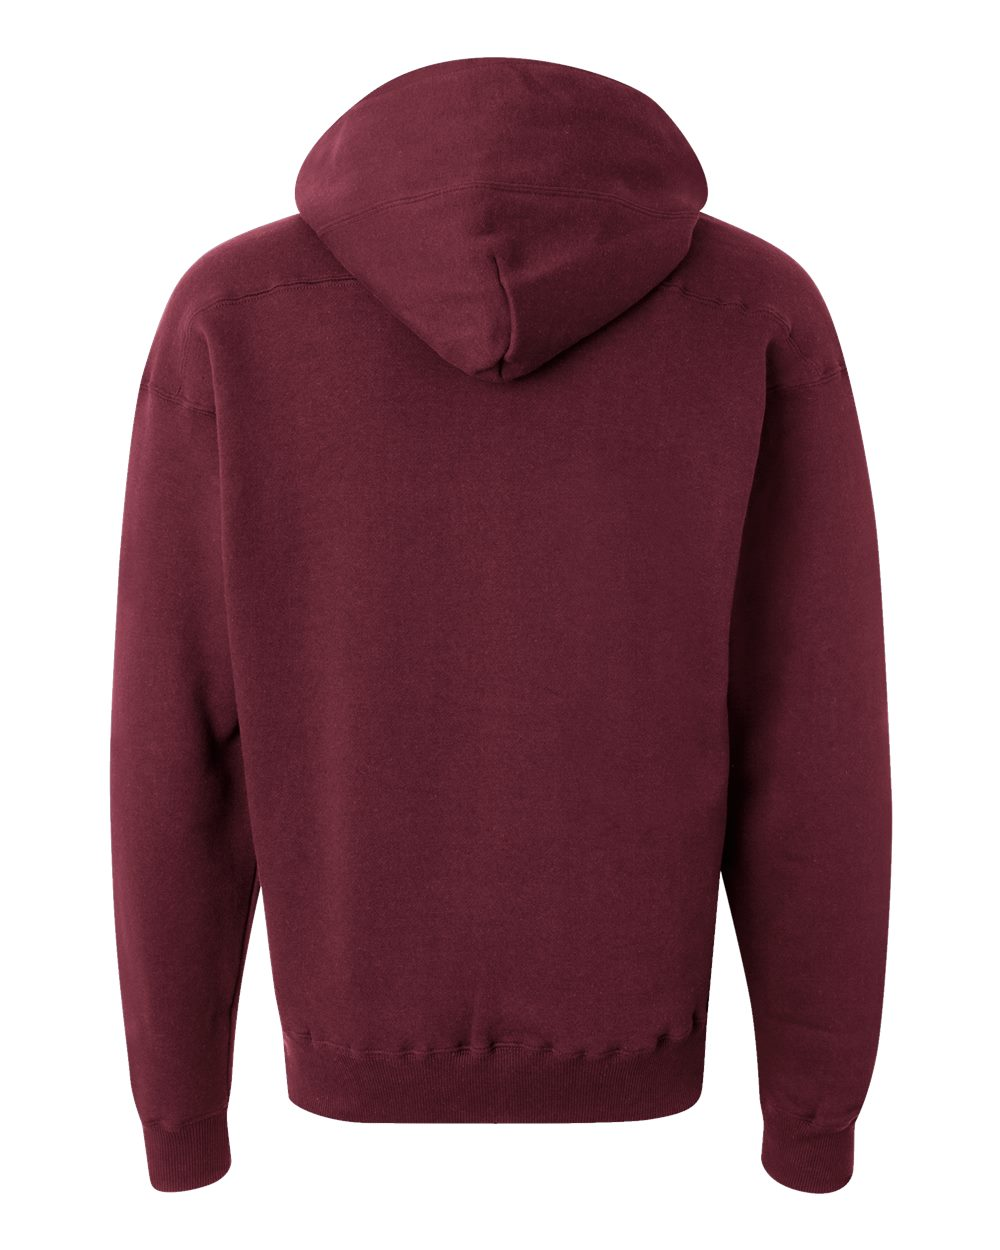 J-America-Mens-Blank-Sport-Lace-Hooded-Sweatshirt-8830-up-to-3XL thumbnail 16